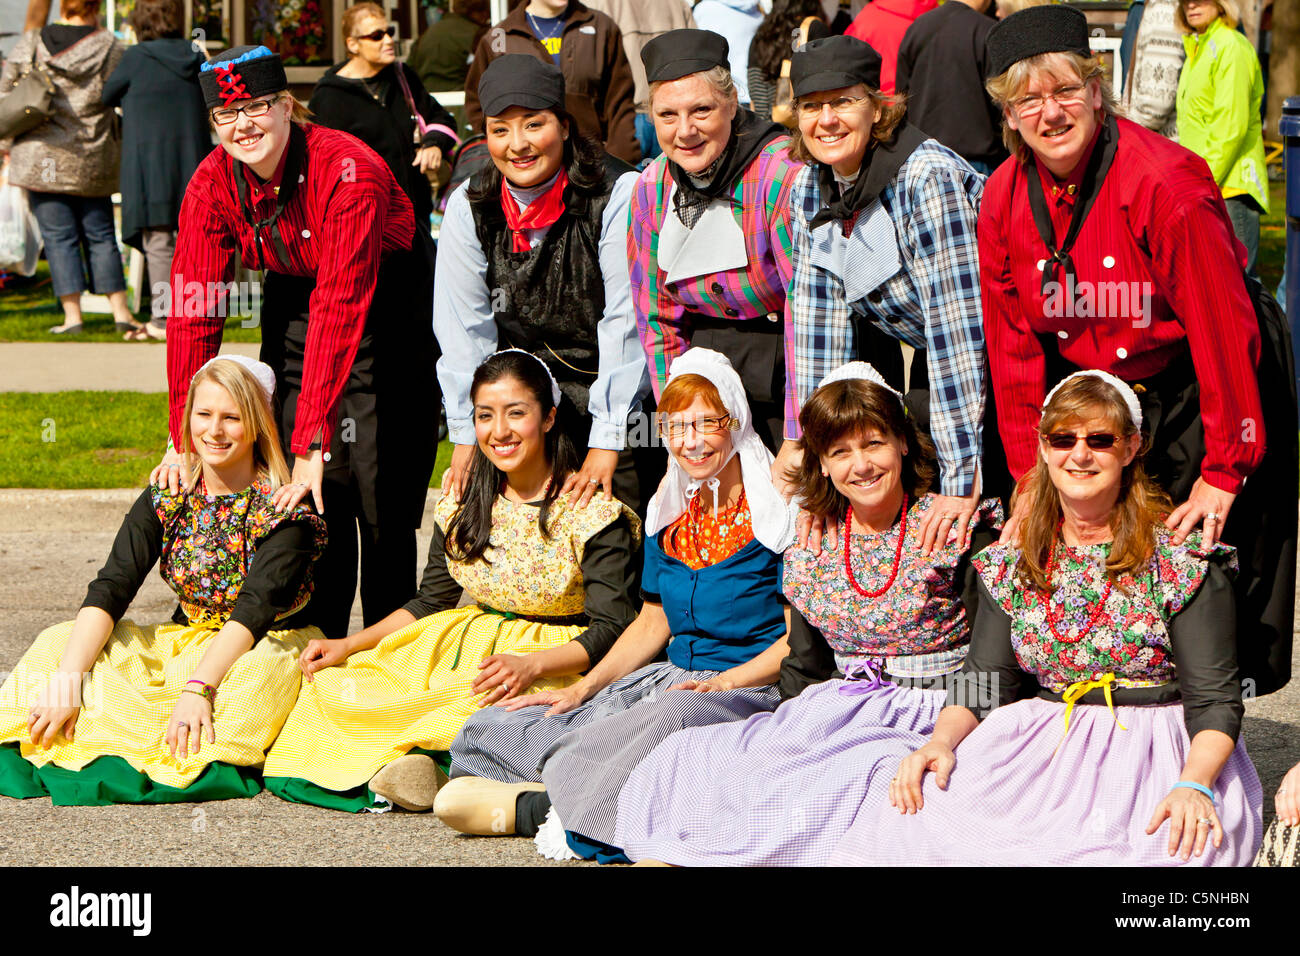 Dutch people posing in a group in ethnic dress in Holland, Michigan, USA. - Stock Image